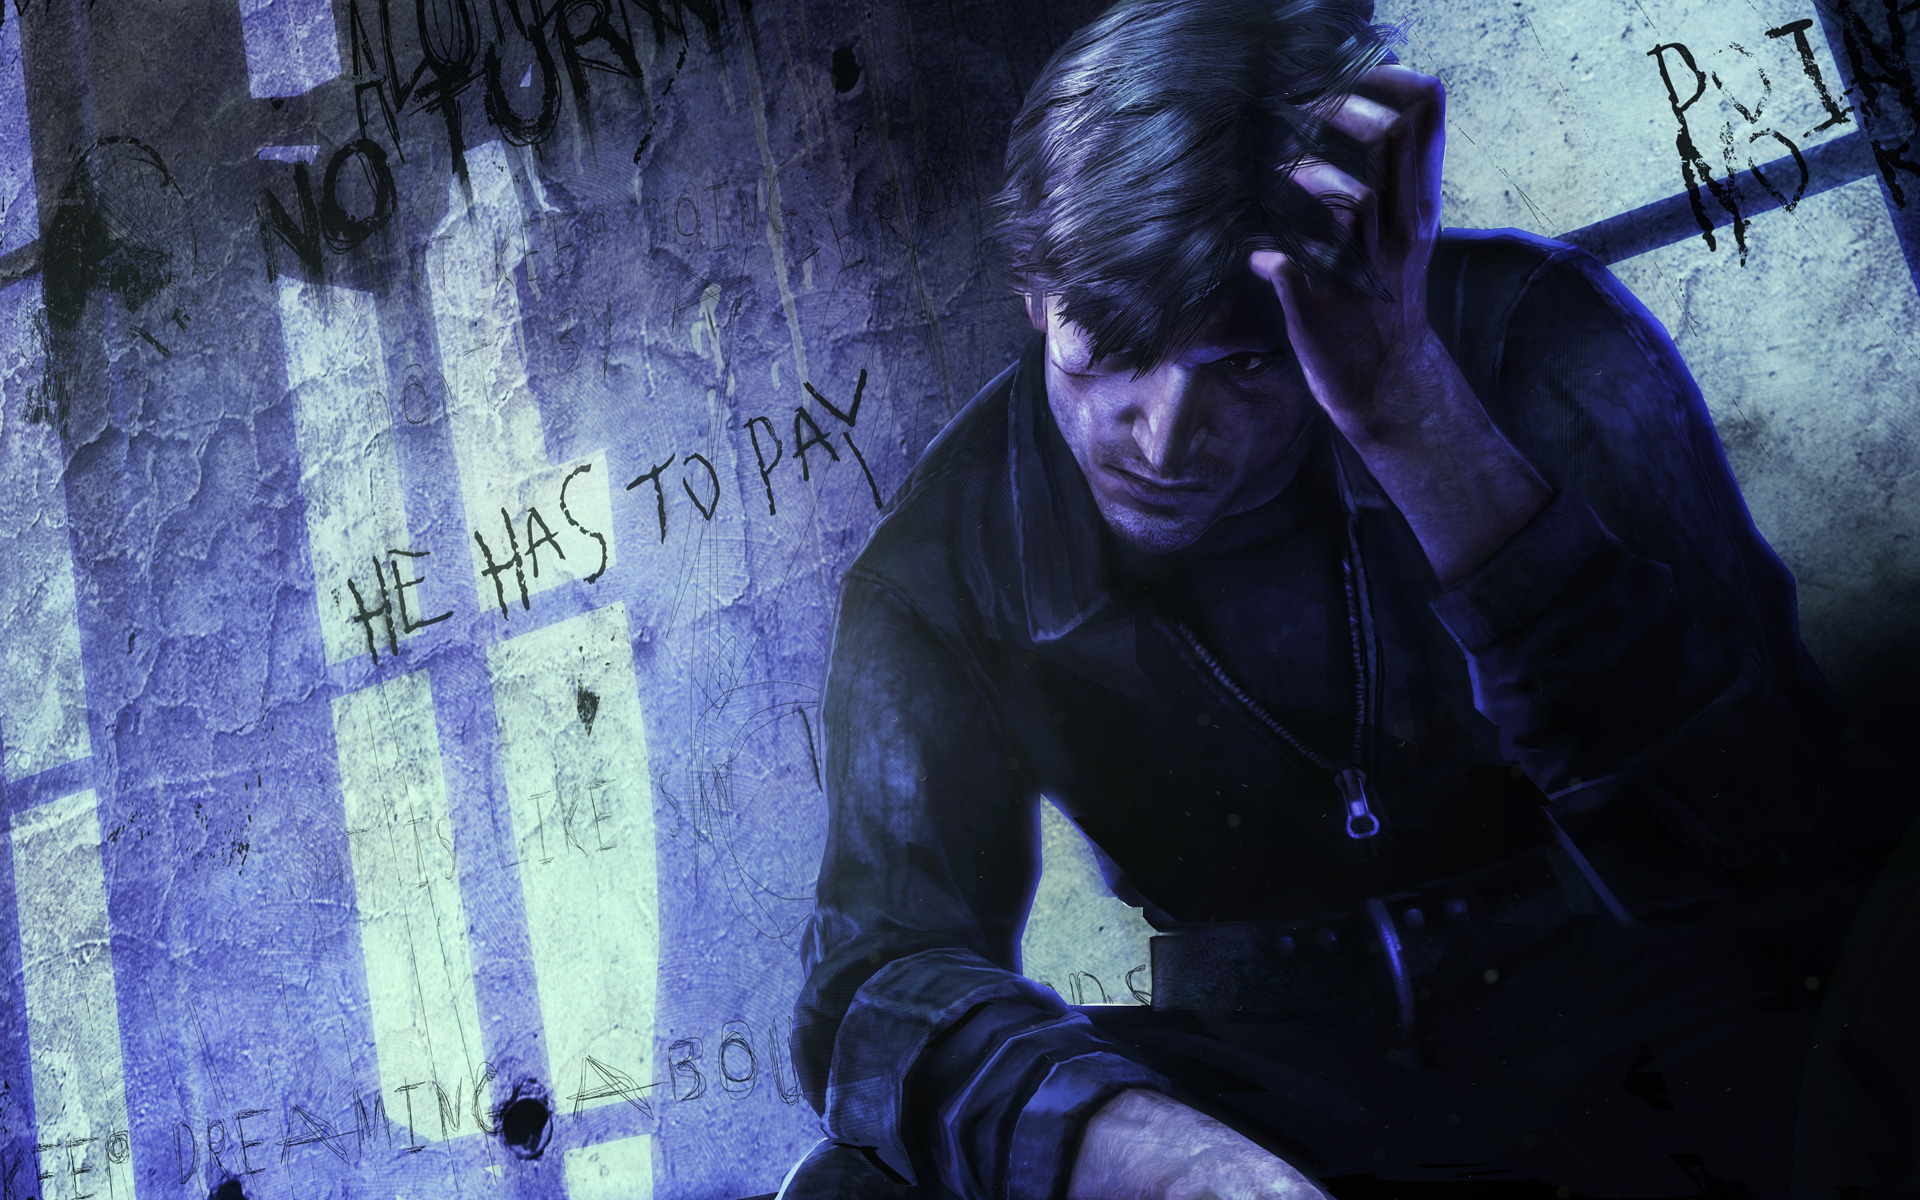 Silent Hill: Downpour Wallpaper in 1920x1200